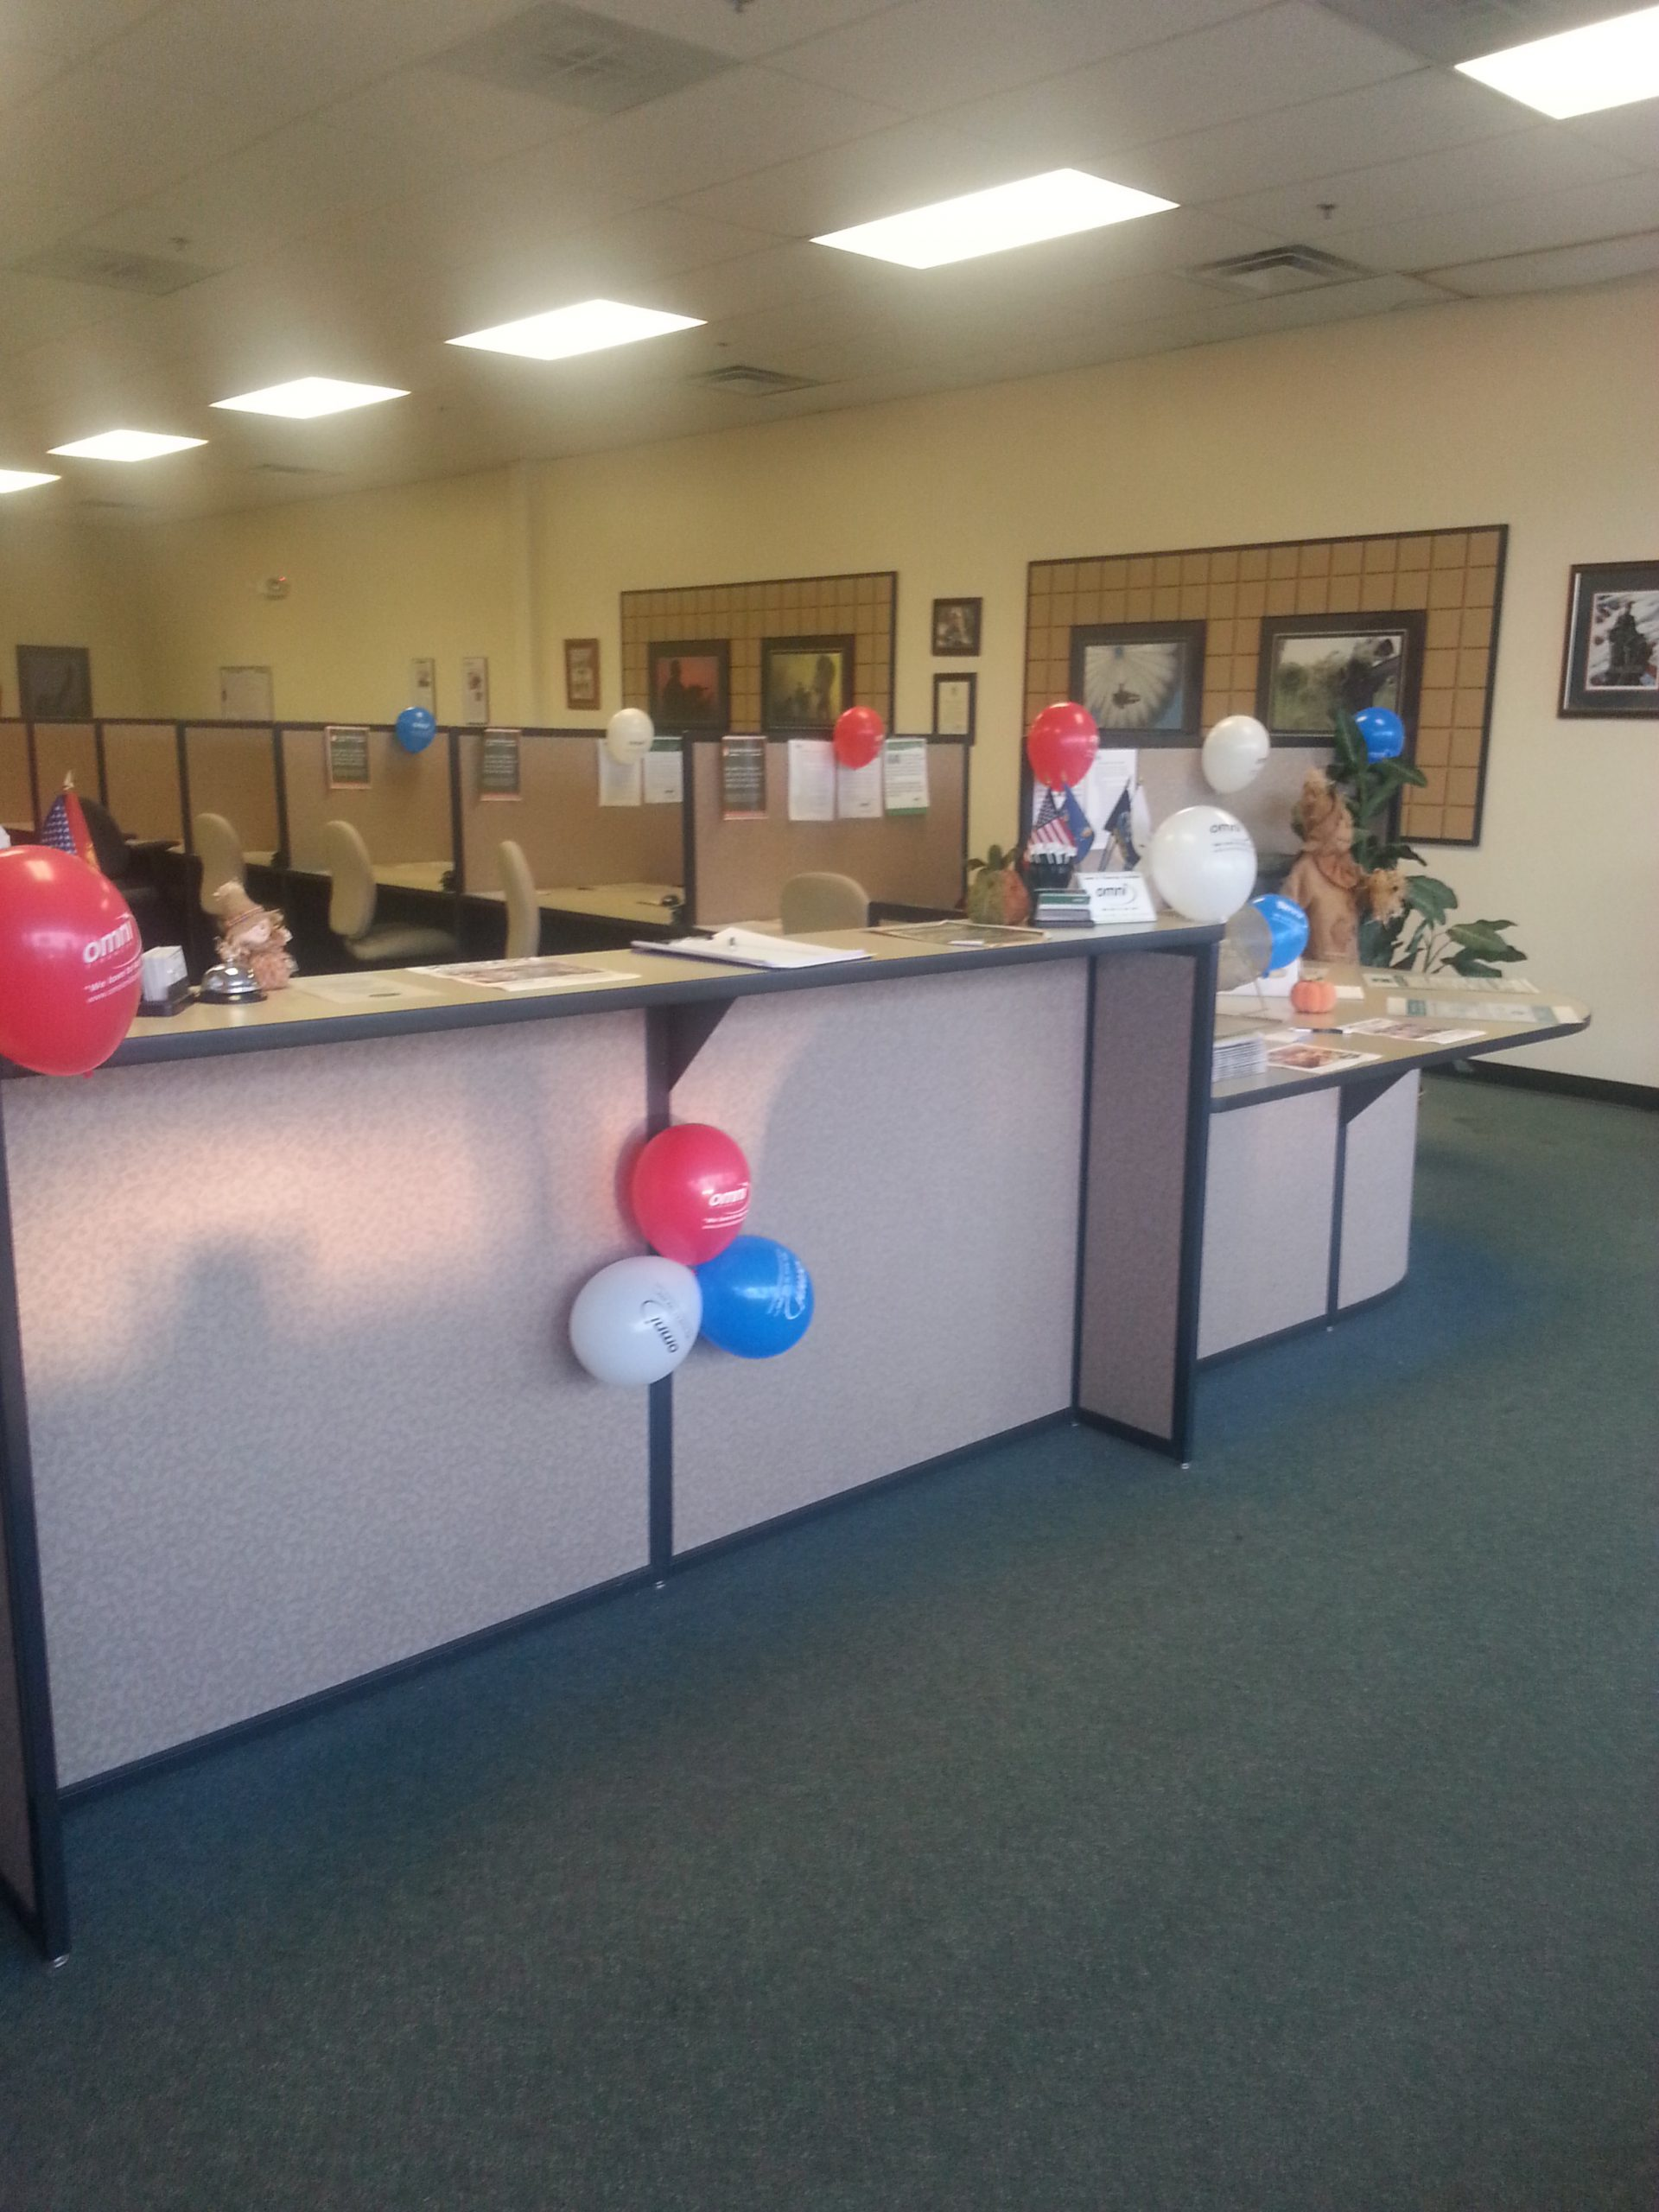 Interior Decorations with Balloons